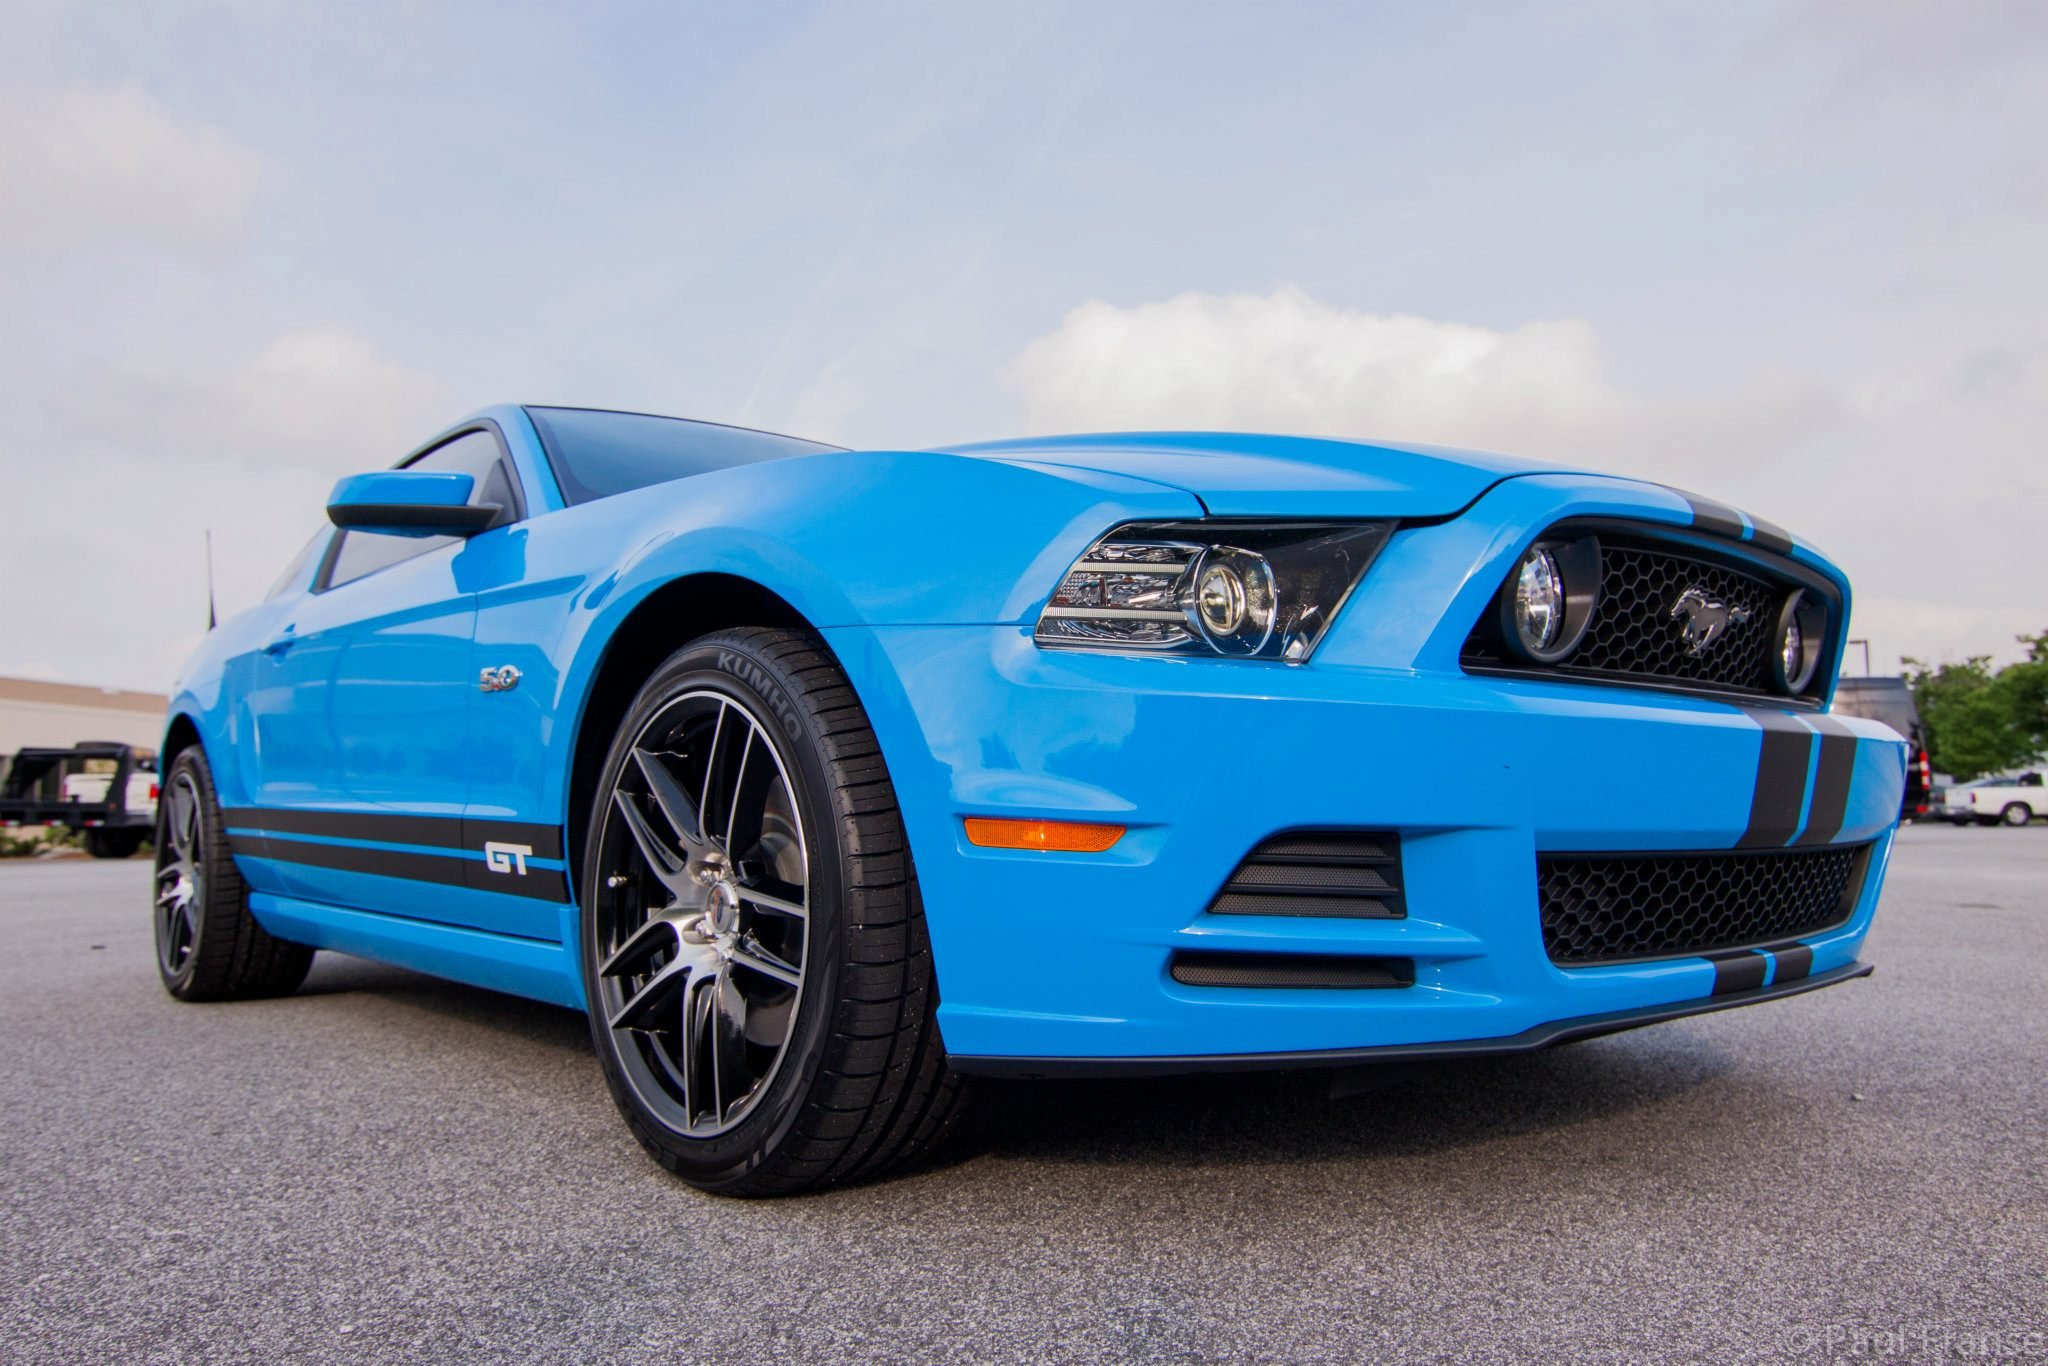 Ford San Jose >> My new 2013 Grabber Blue GT! - Ford Mustang Forum